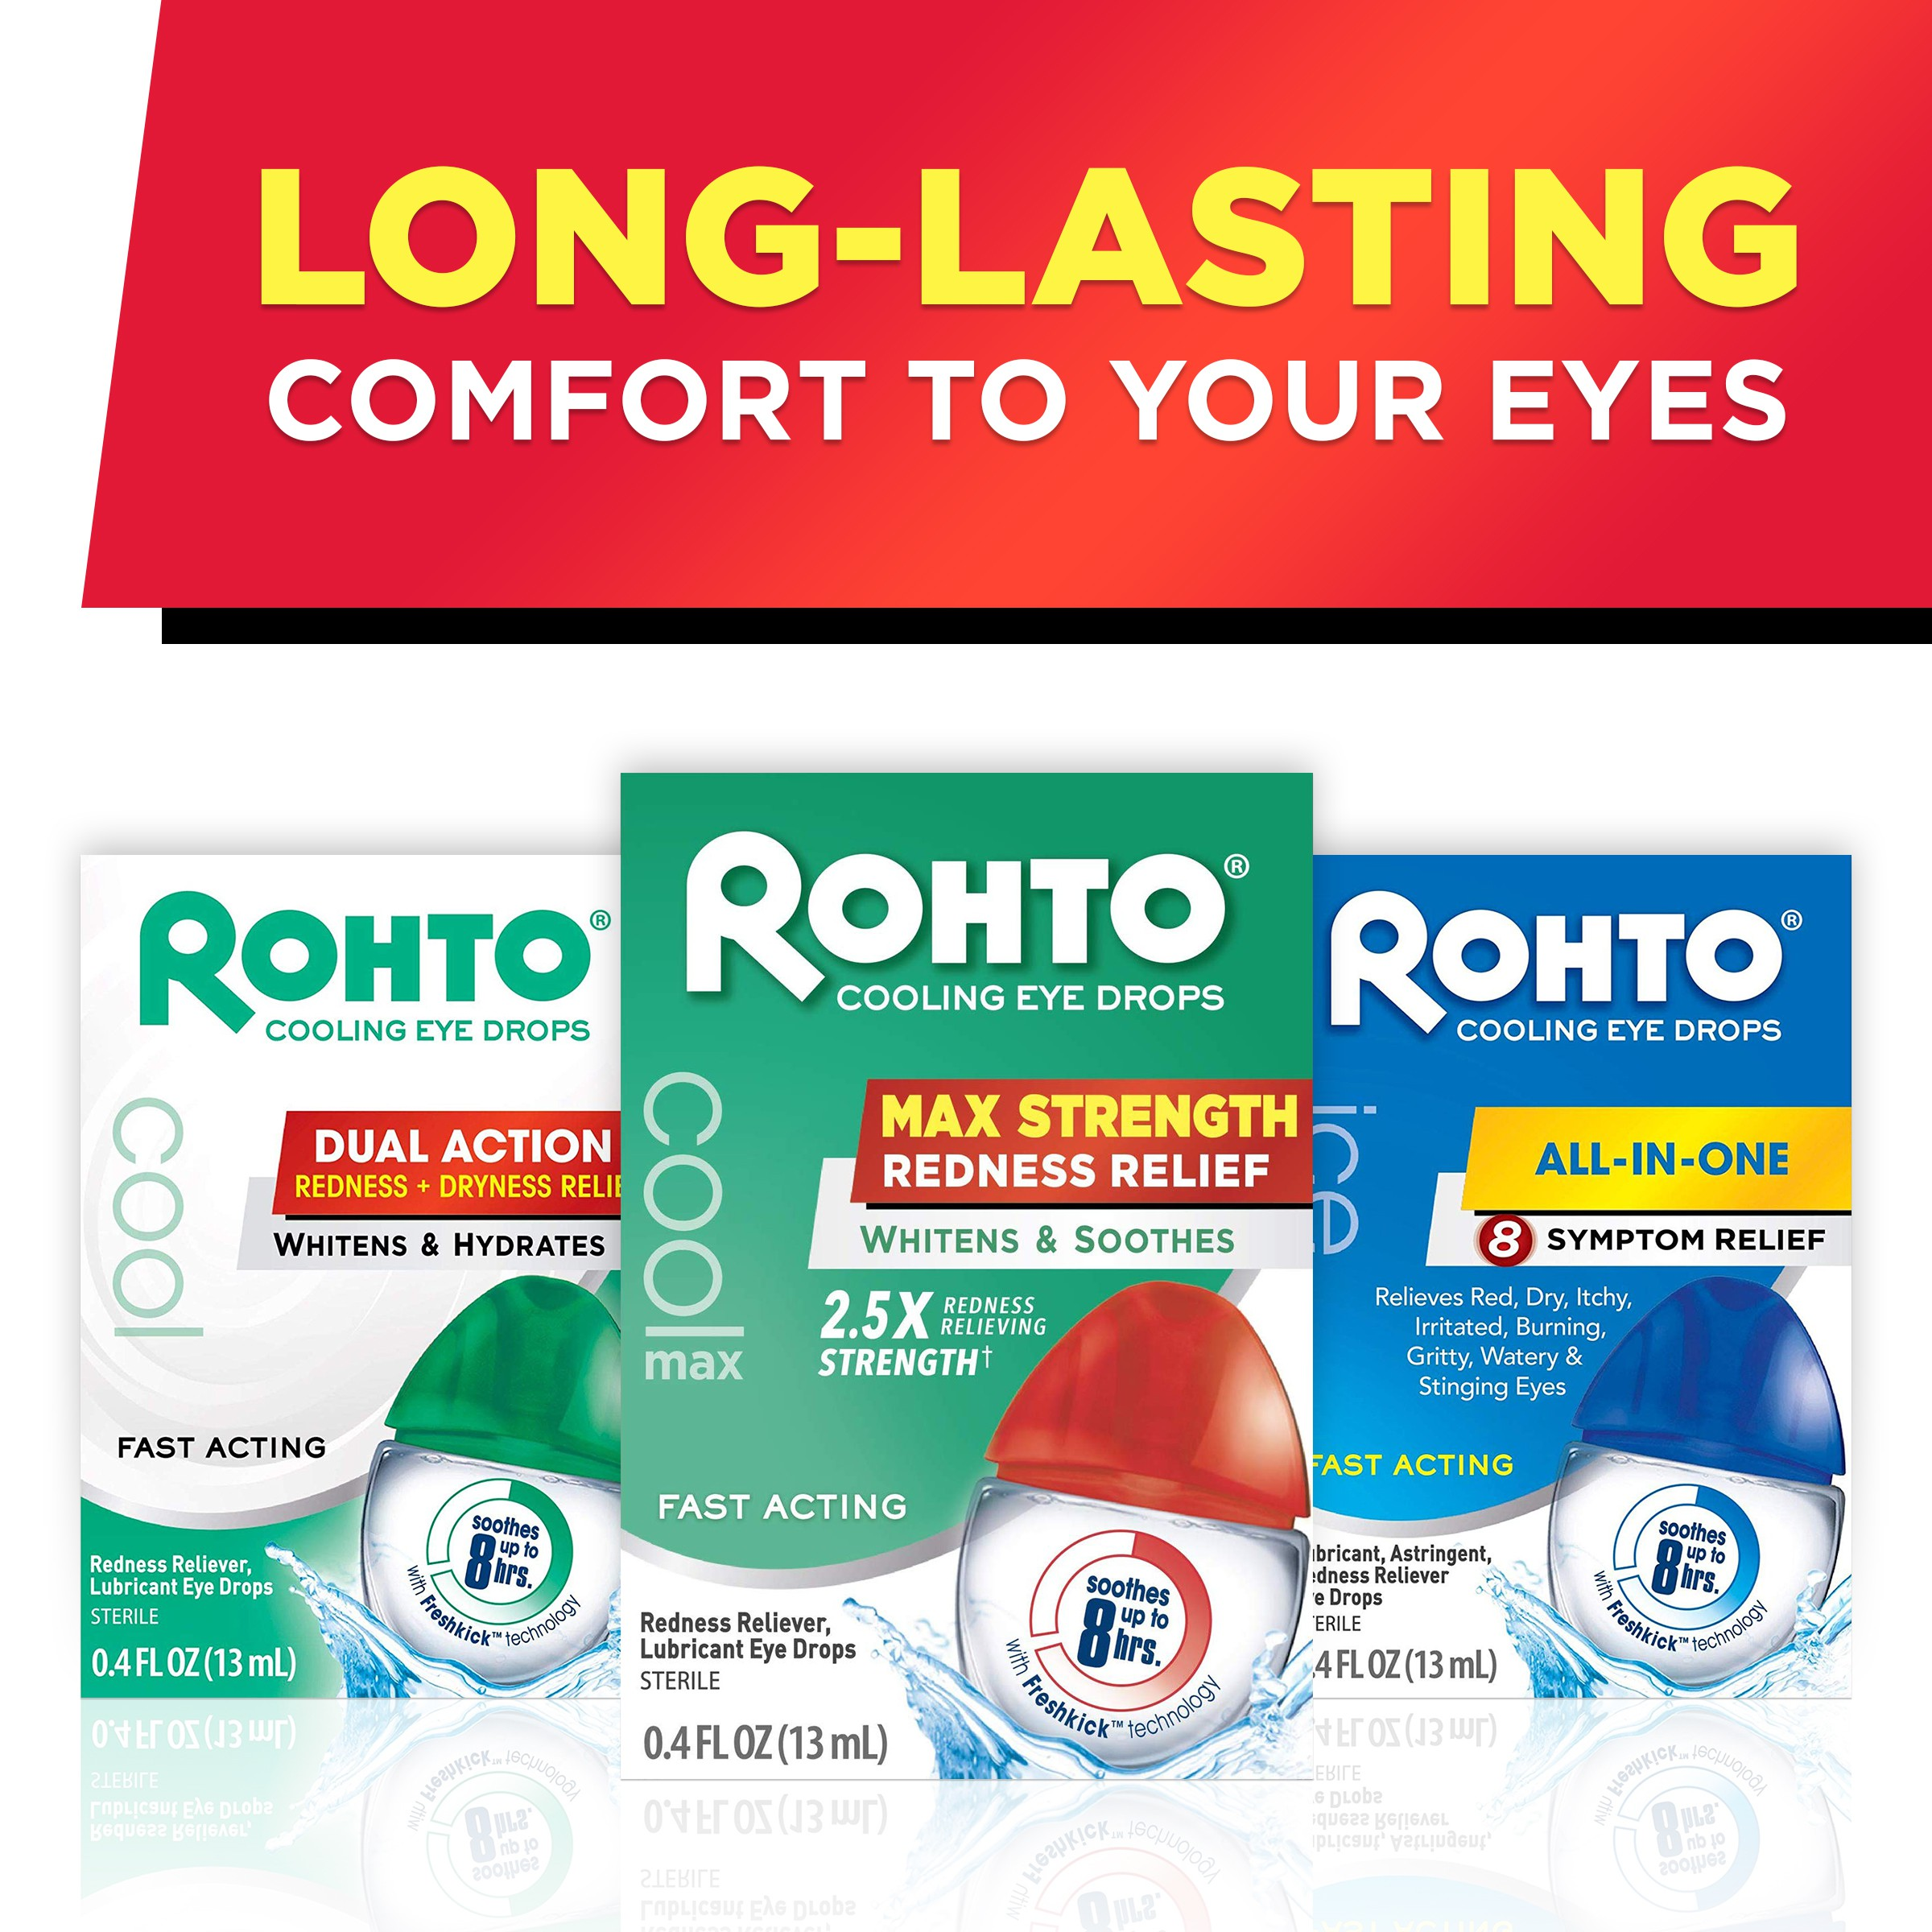 Rohto - Template Images: Create Image Carousels for E-commerce